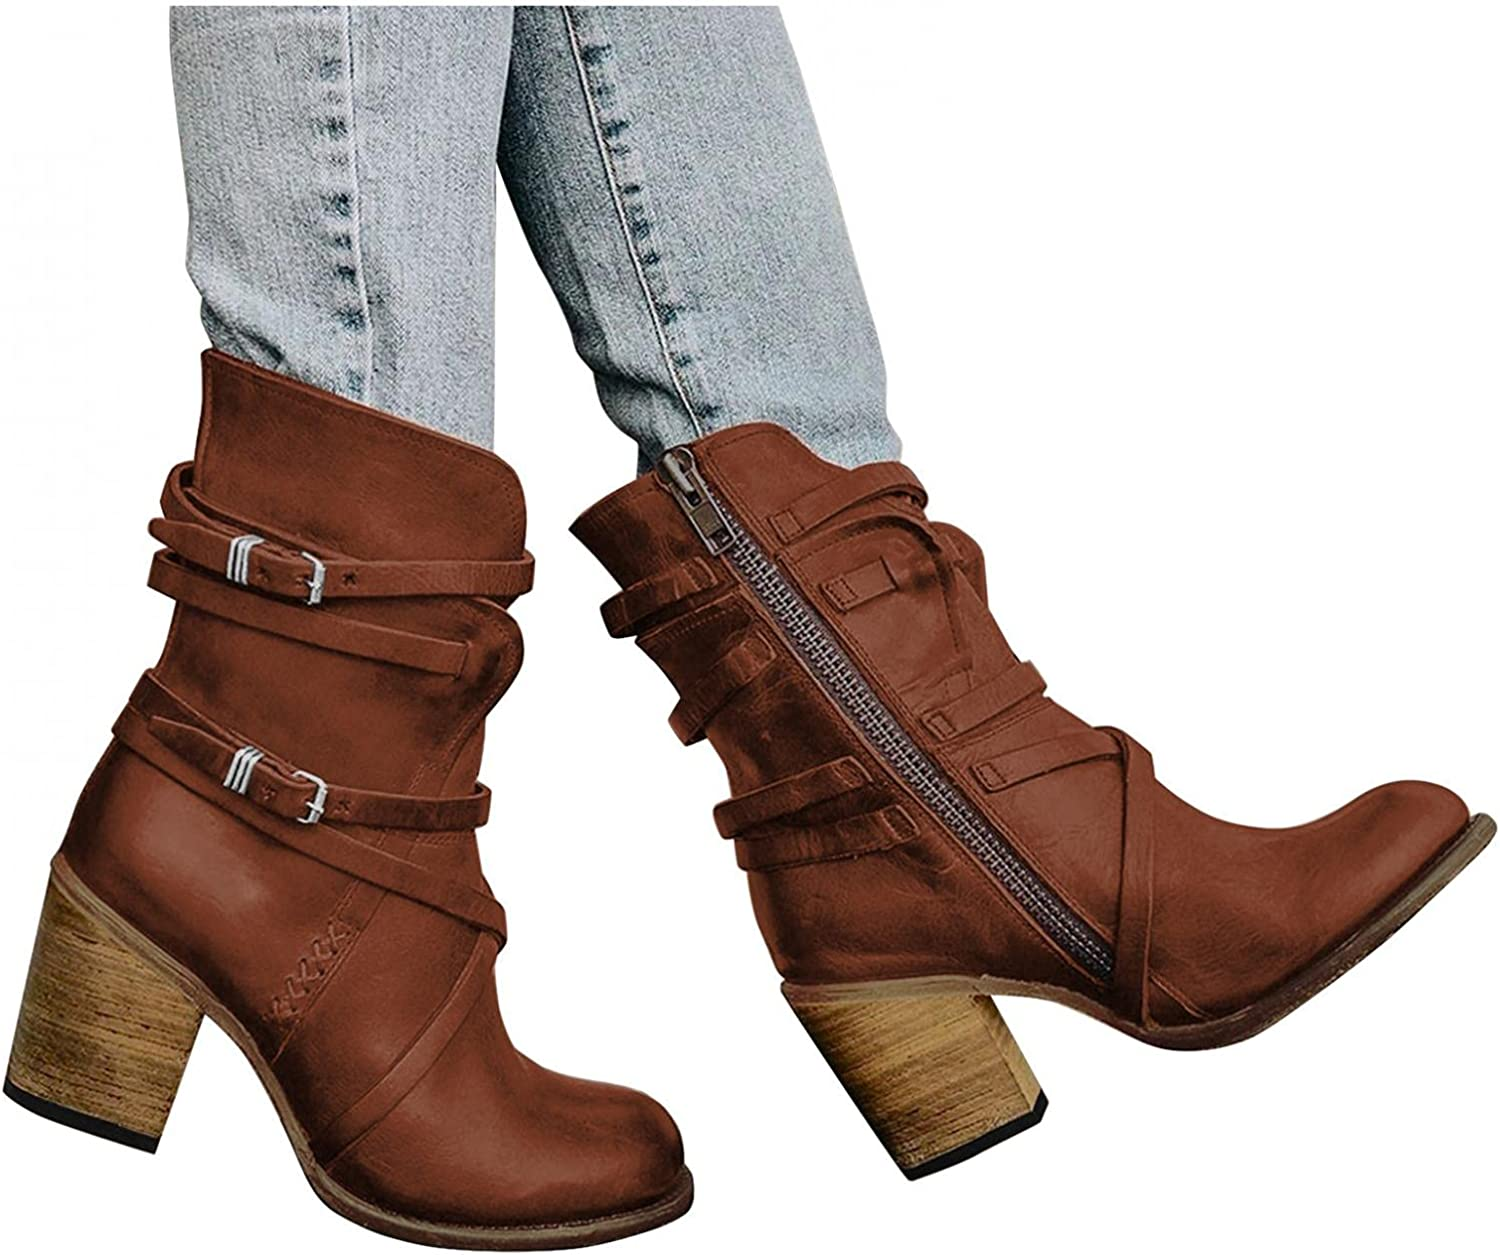 Hbeylia Leather Cowboys Cowgirls Boots For Women Fashion Slouchy Strap Belt Wrapped Chunky Block High Heels Wide Mid Calf Boots Vintage Western Dressy Pump Ankle Booties Riding Short Boots